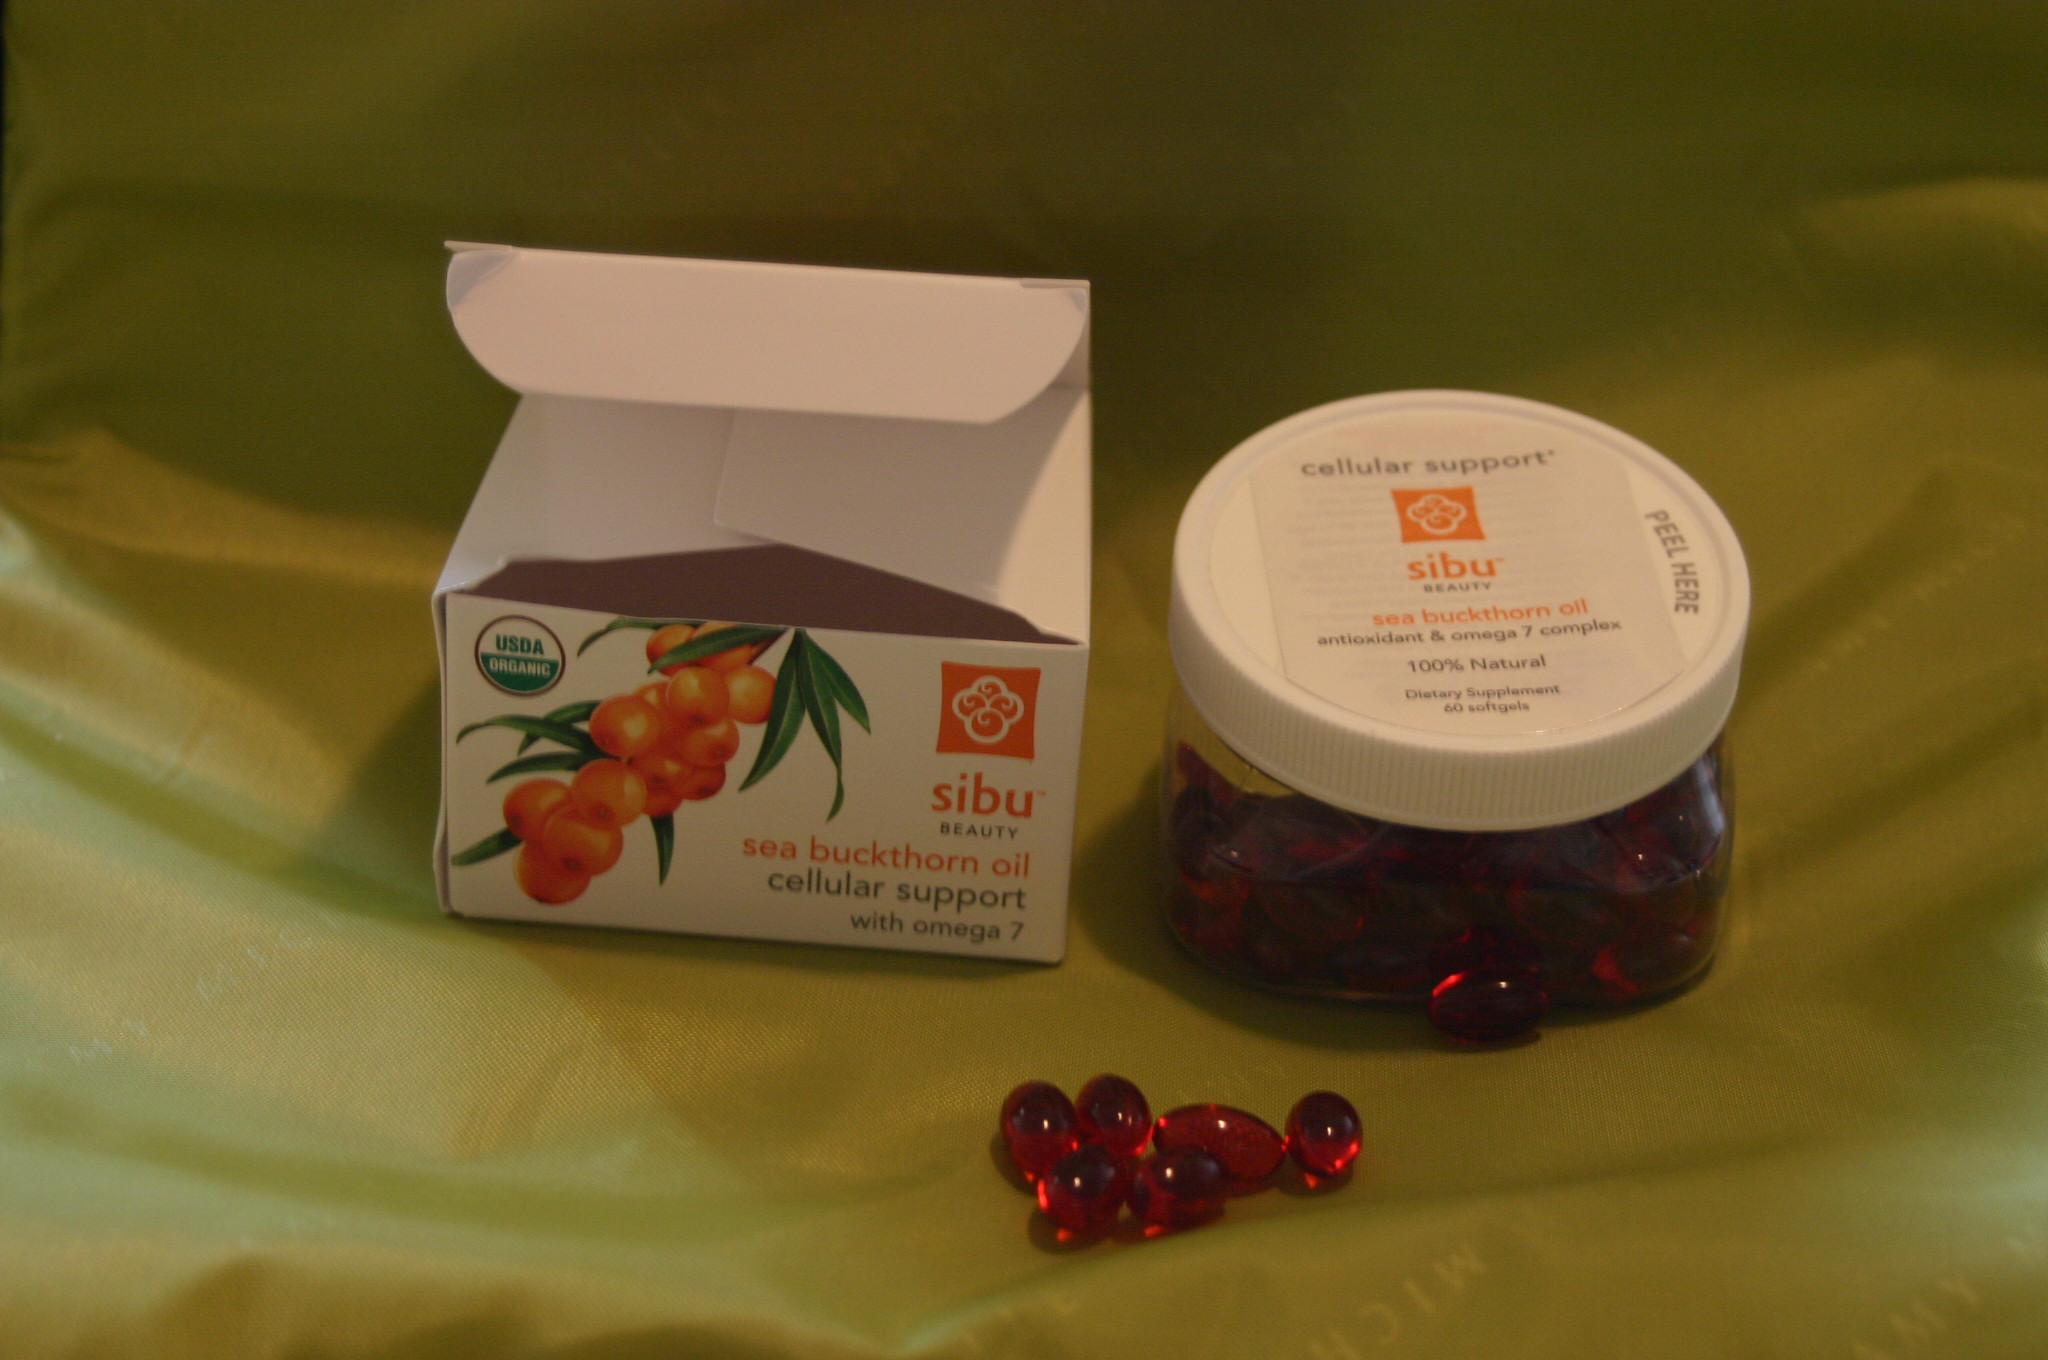 Discussion on this topic: Review of Sibu Beauty Skincare, review-of-sibu-beauty-skincare/